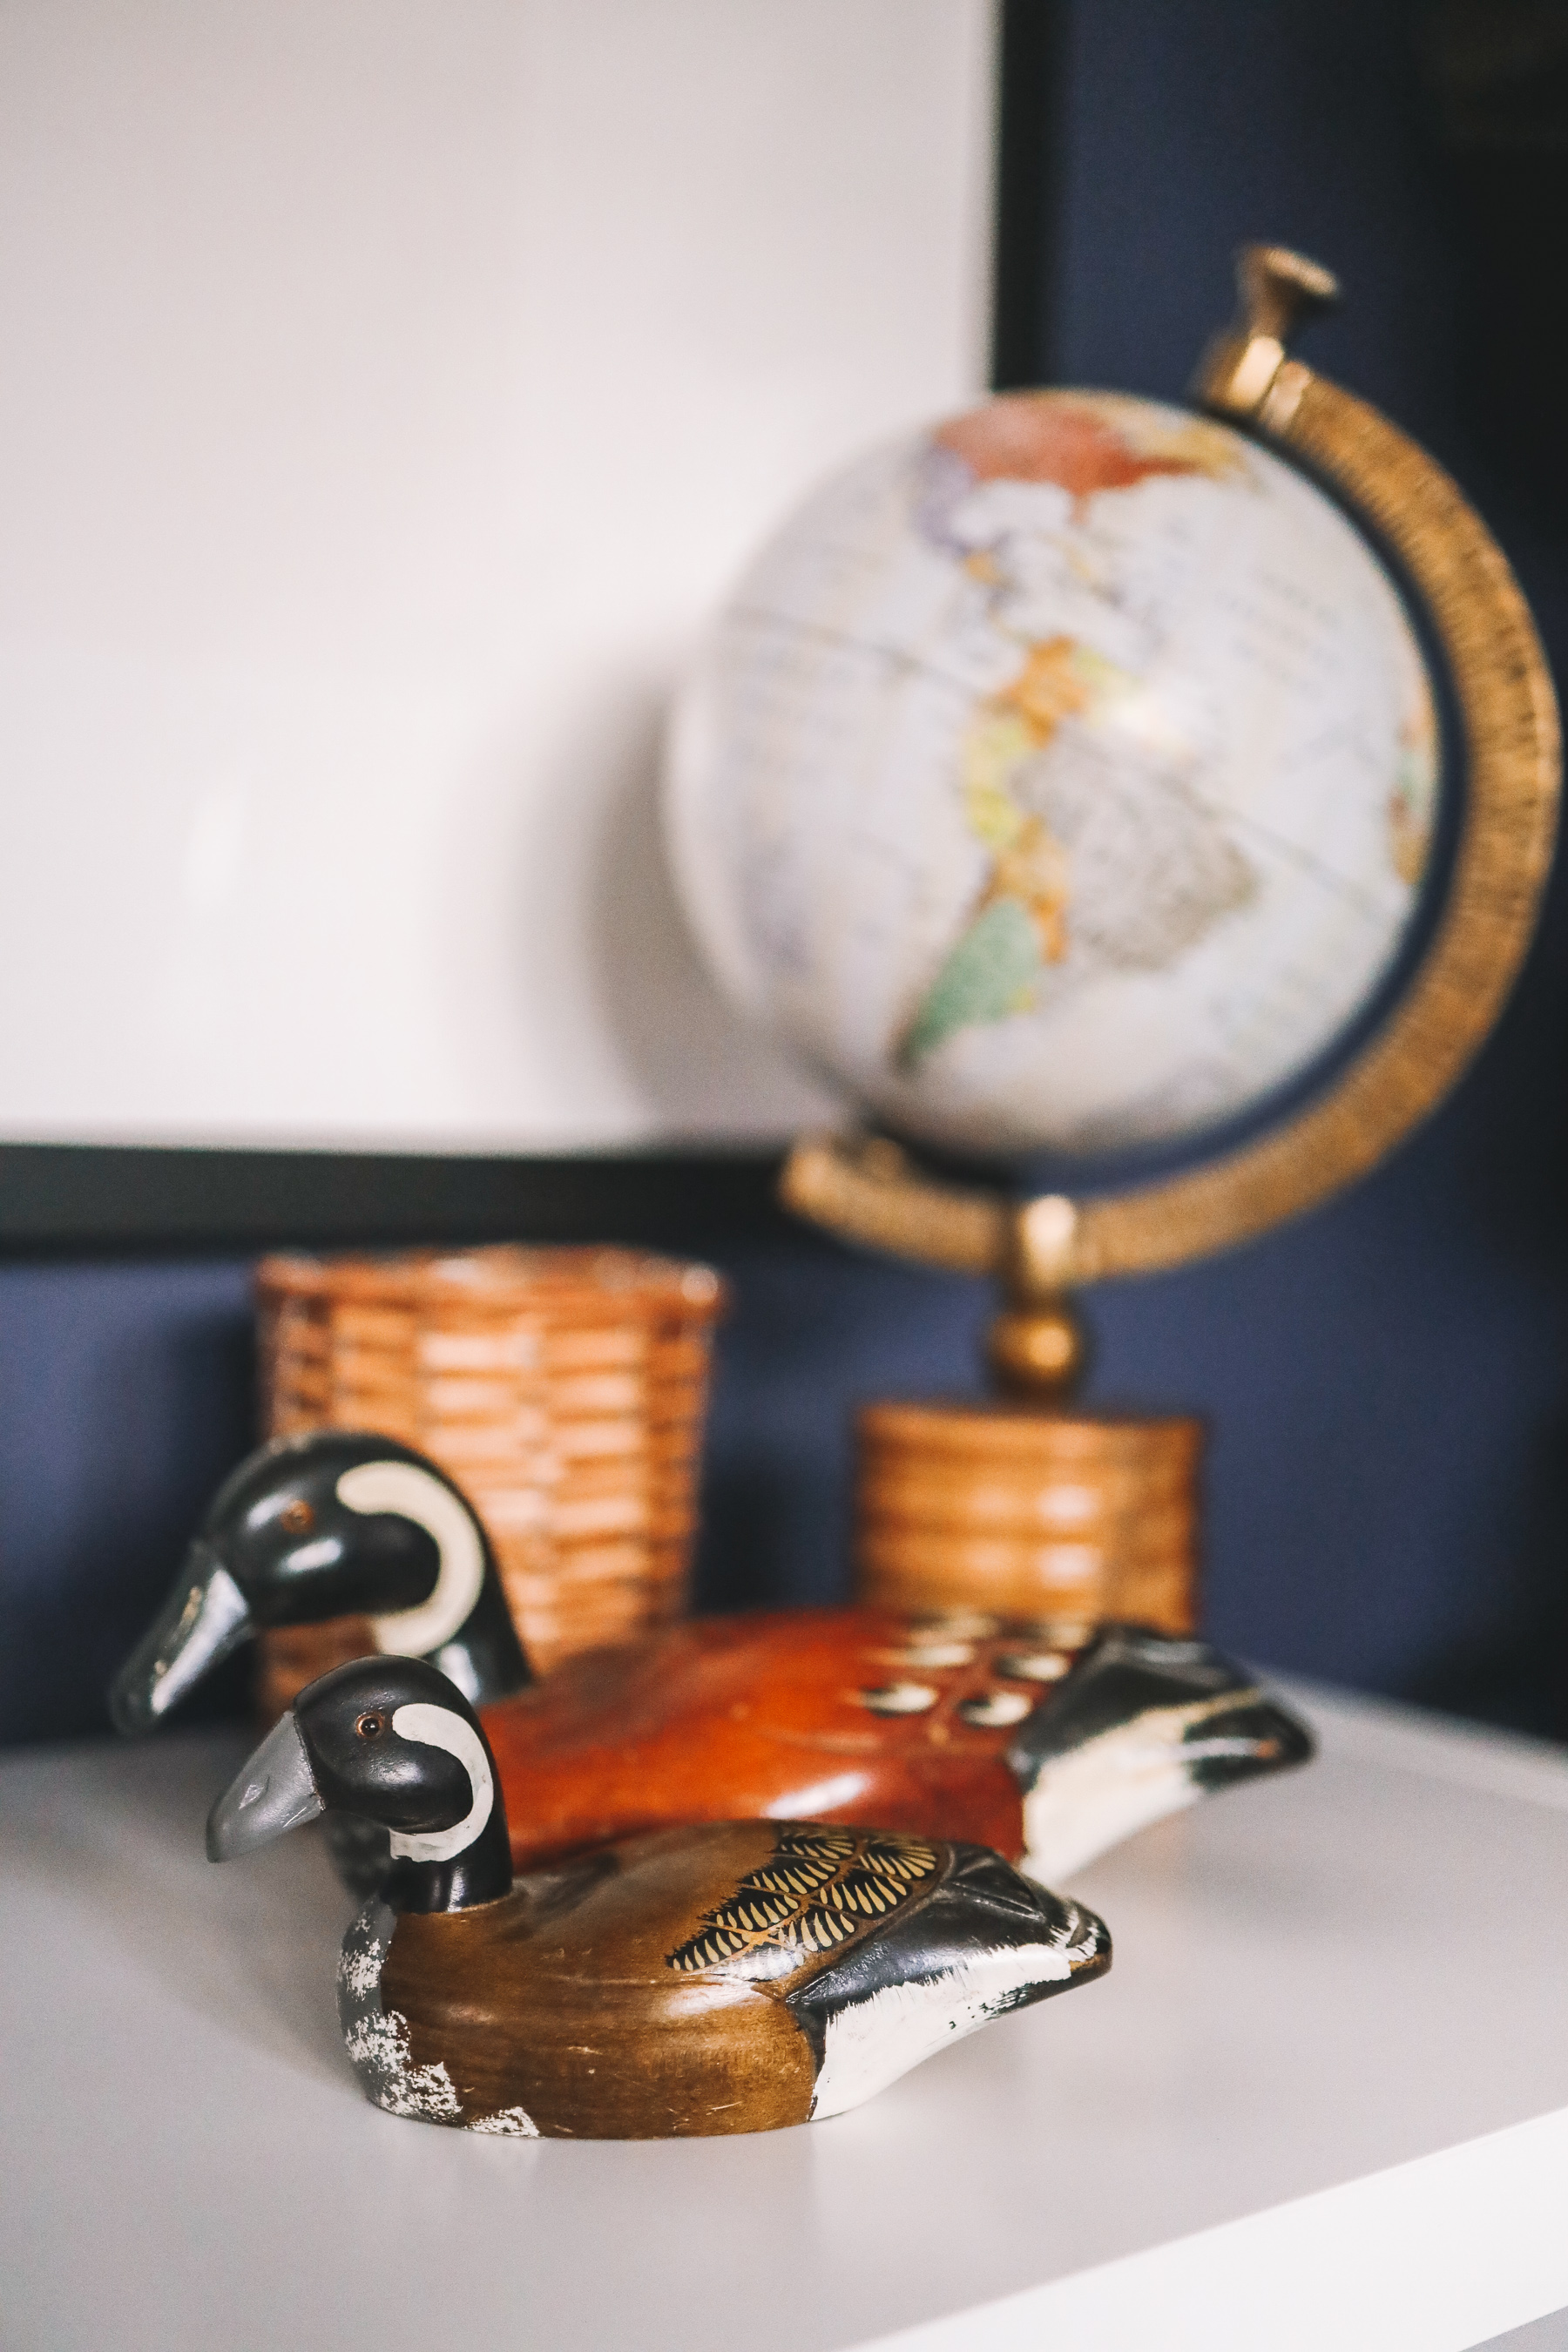 ducks and a globe